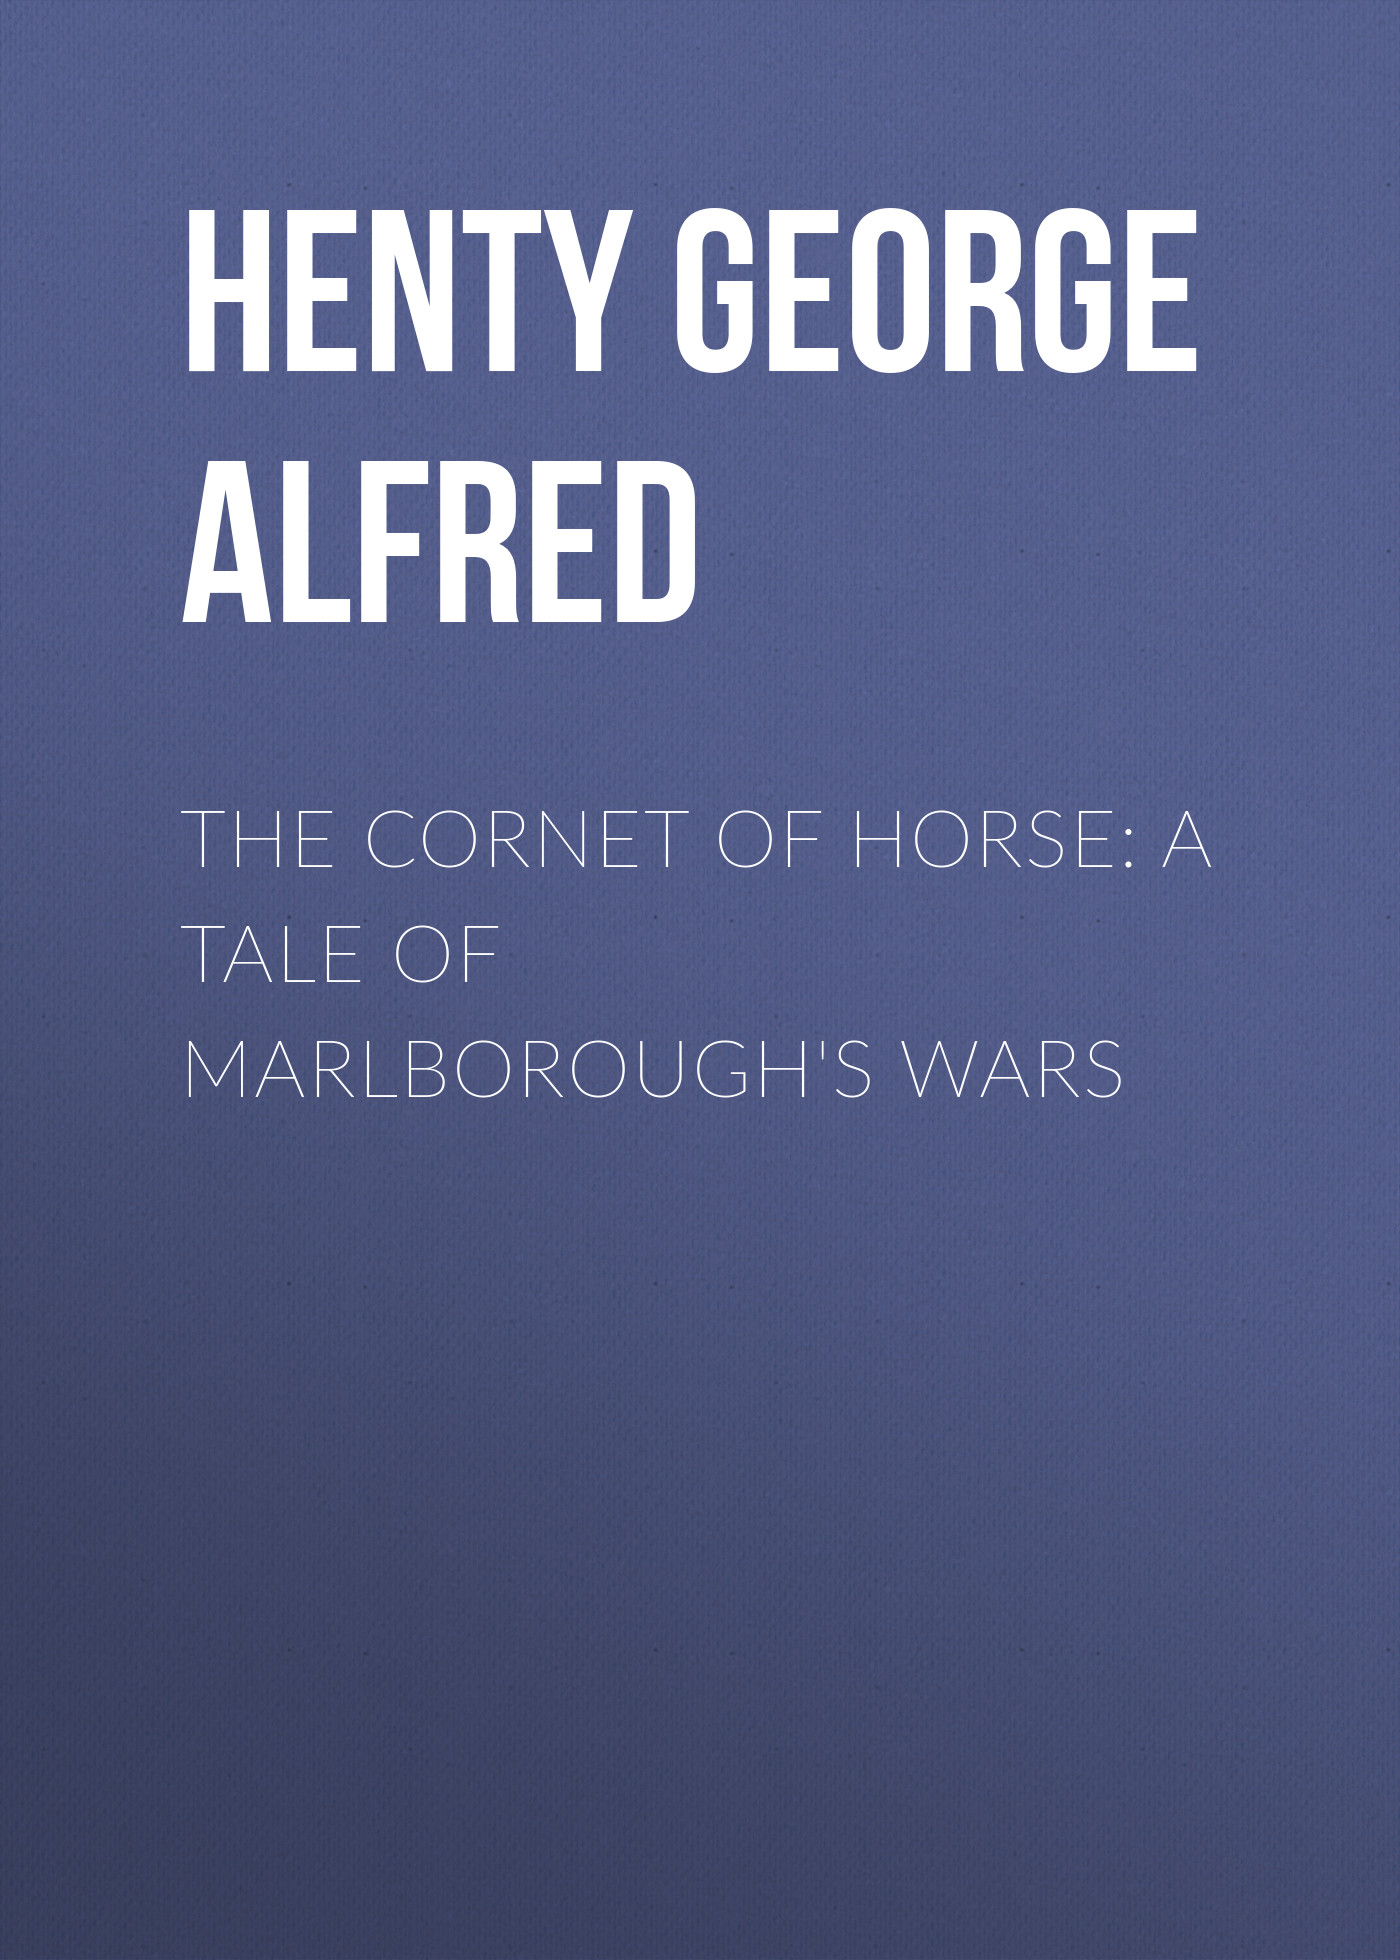 Henty George Alfred The Cornet of Horse: A Tale of Marlborough's Wars